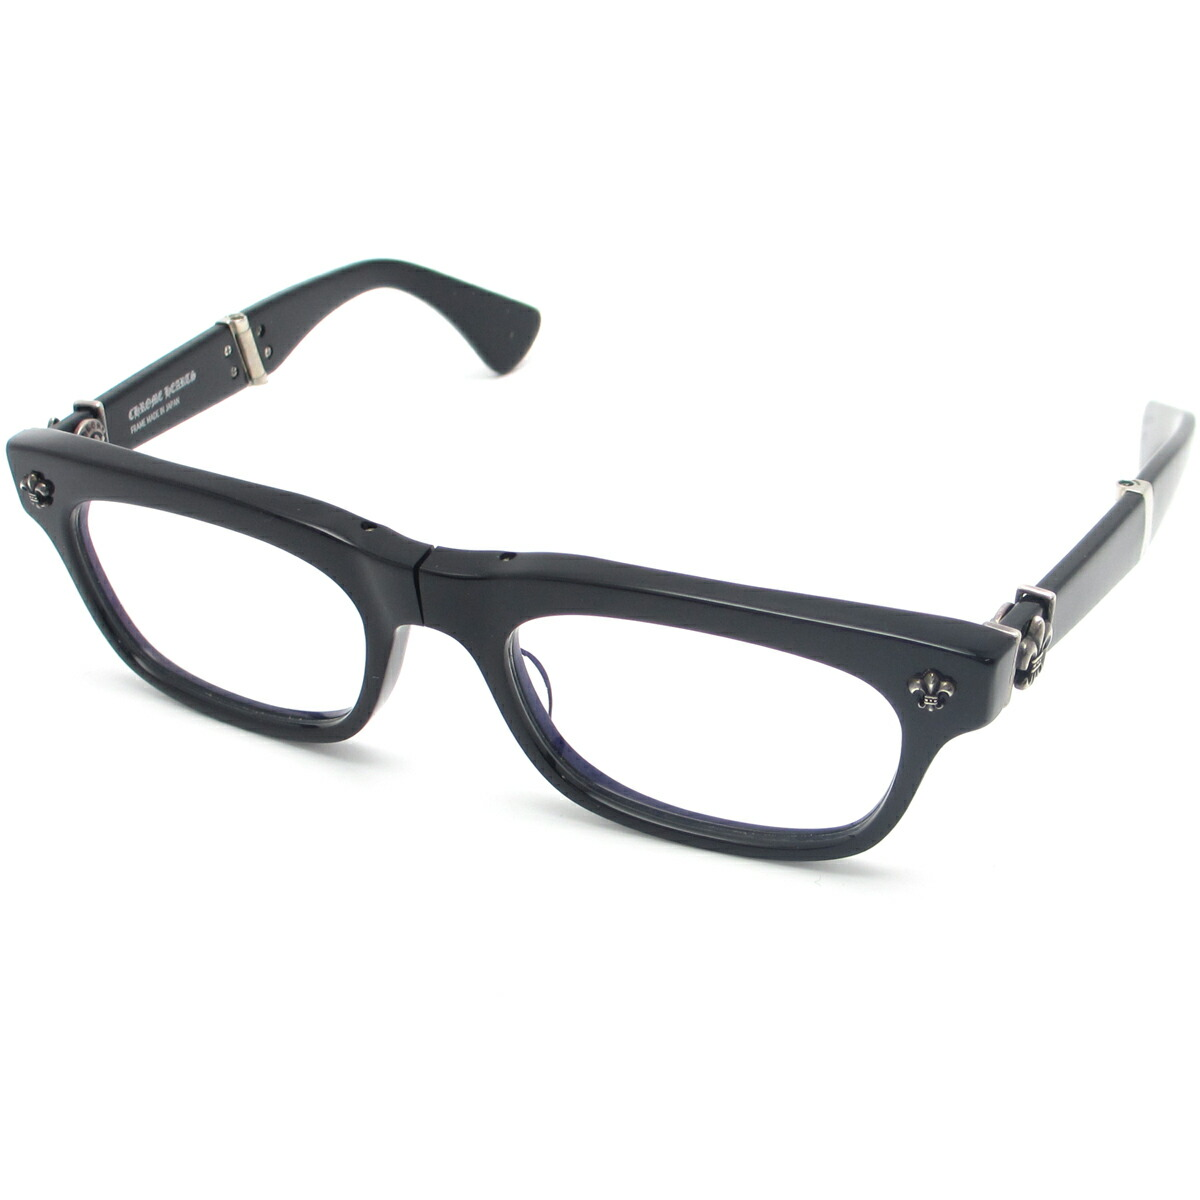 Auth Chrome Hearts Droolin Eyeglass Frame Clear Lens ※With Diopter ...